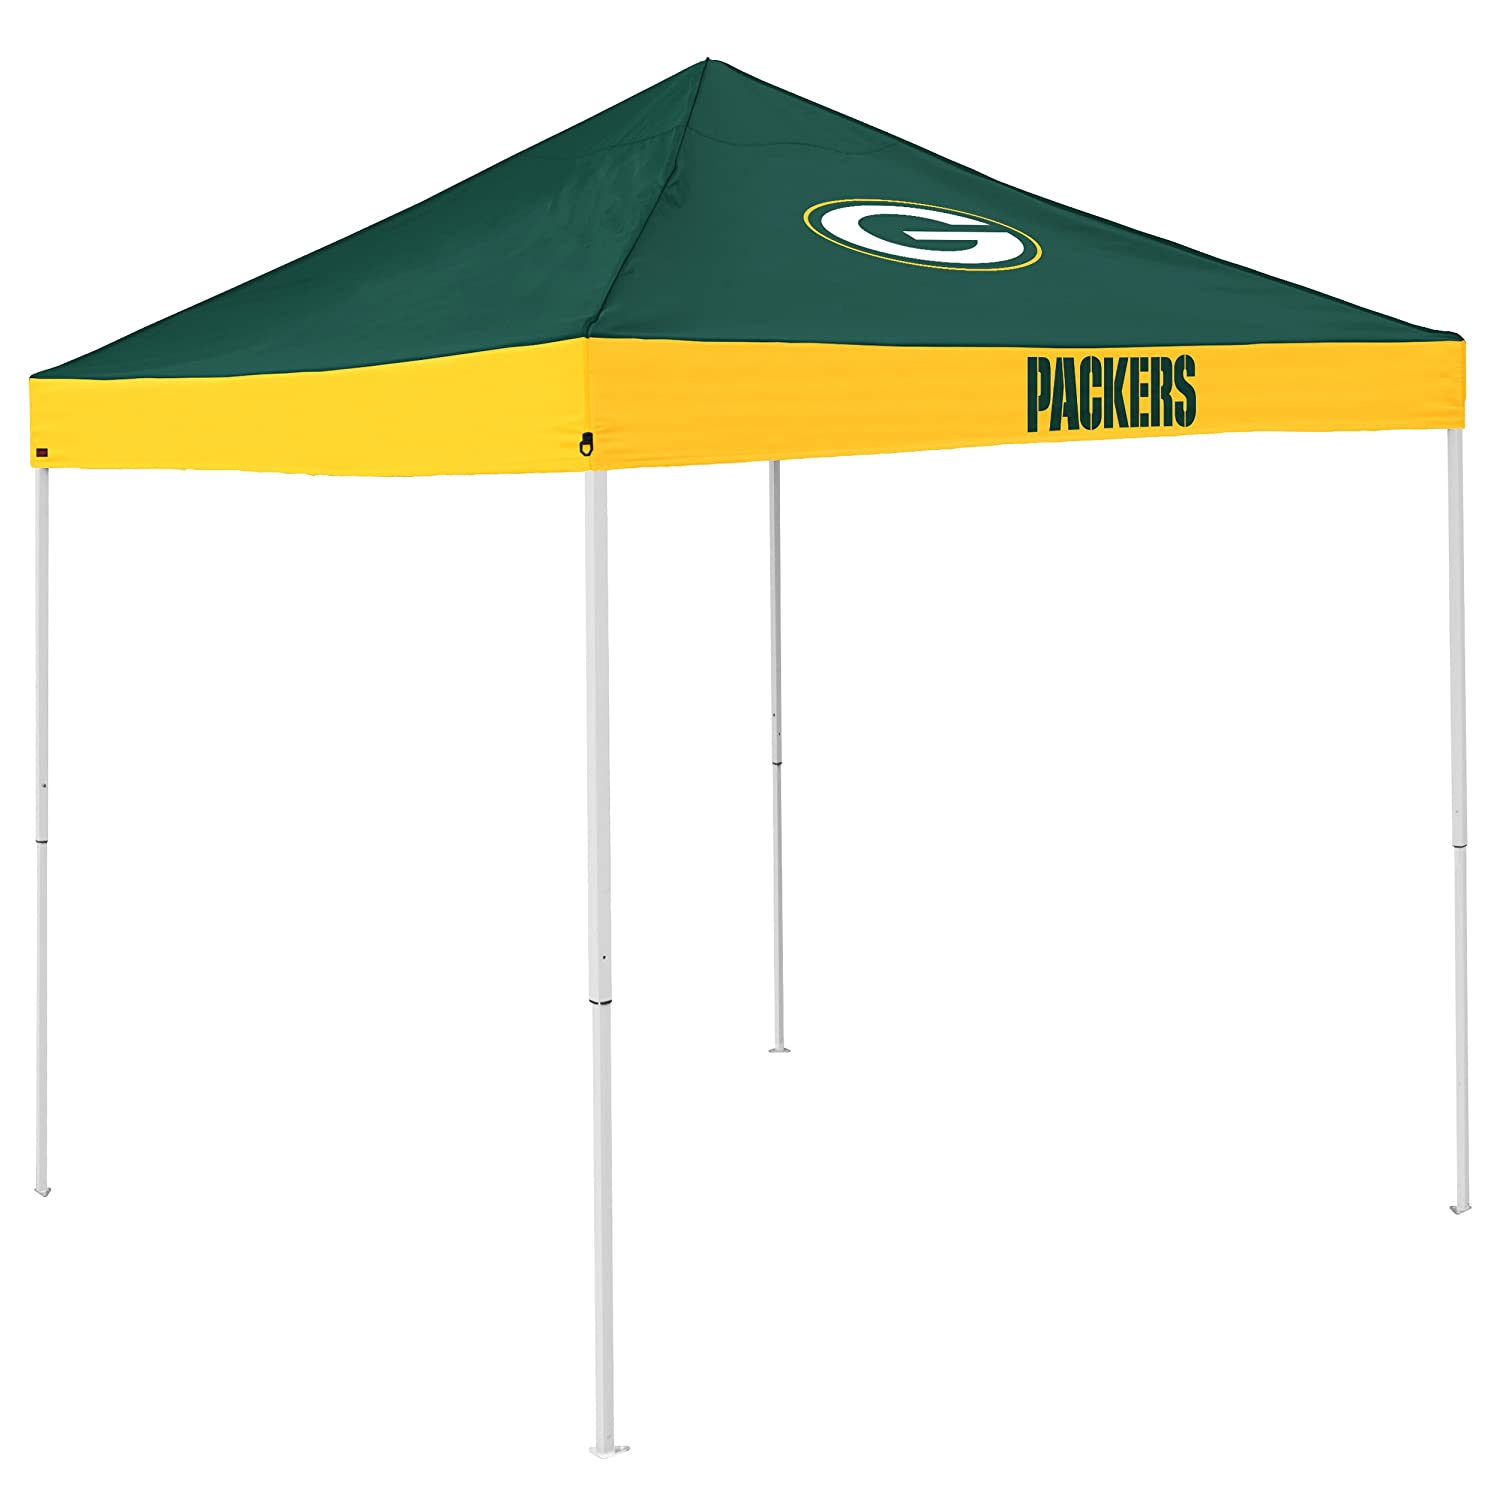 Image of Canopies NFL 9X9' Economy Pop-Up Shelter with Carrying Bag